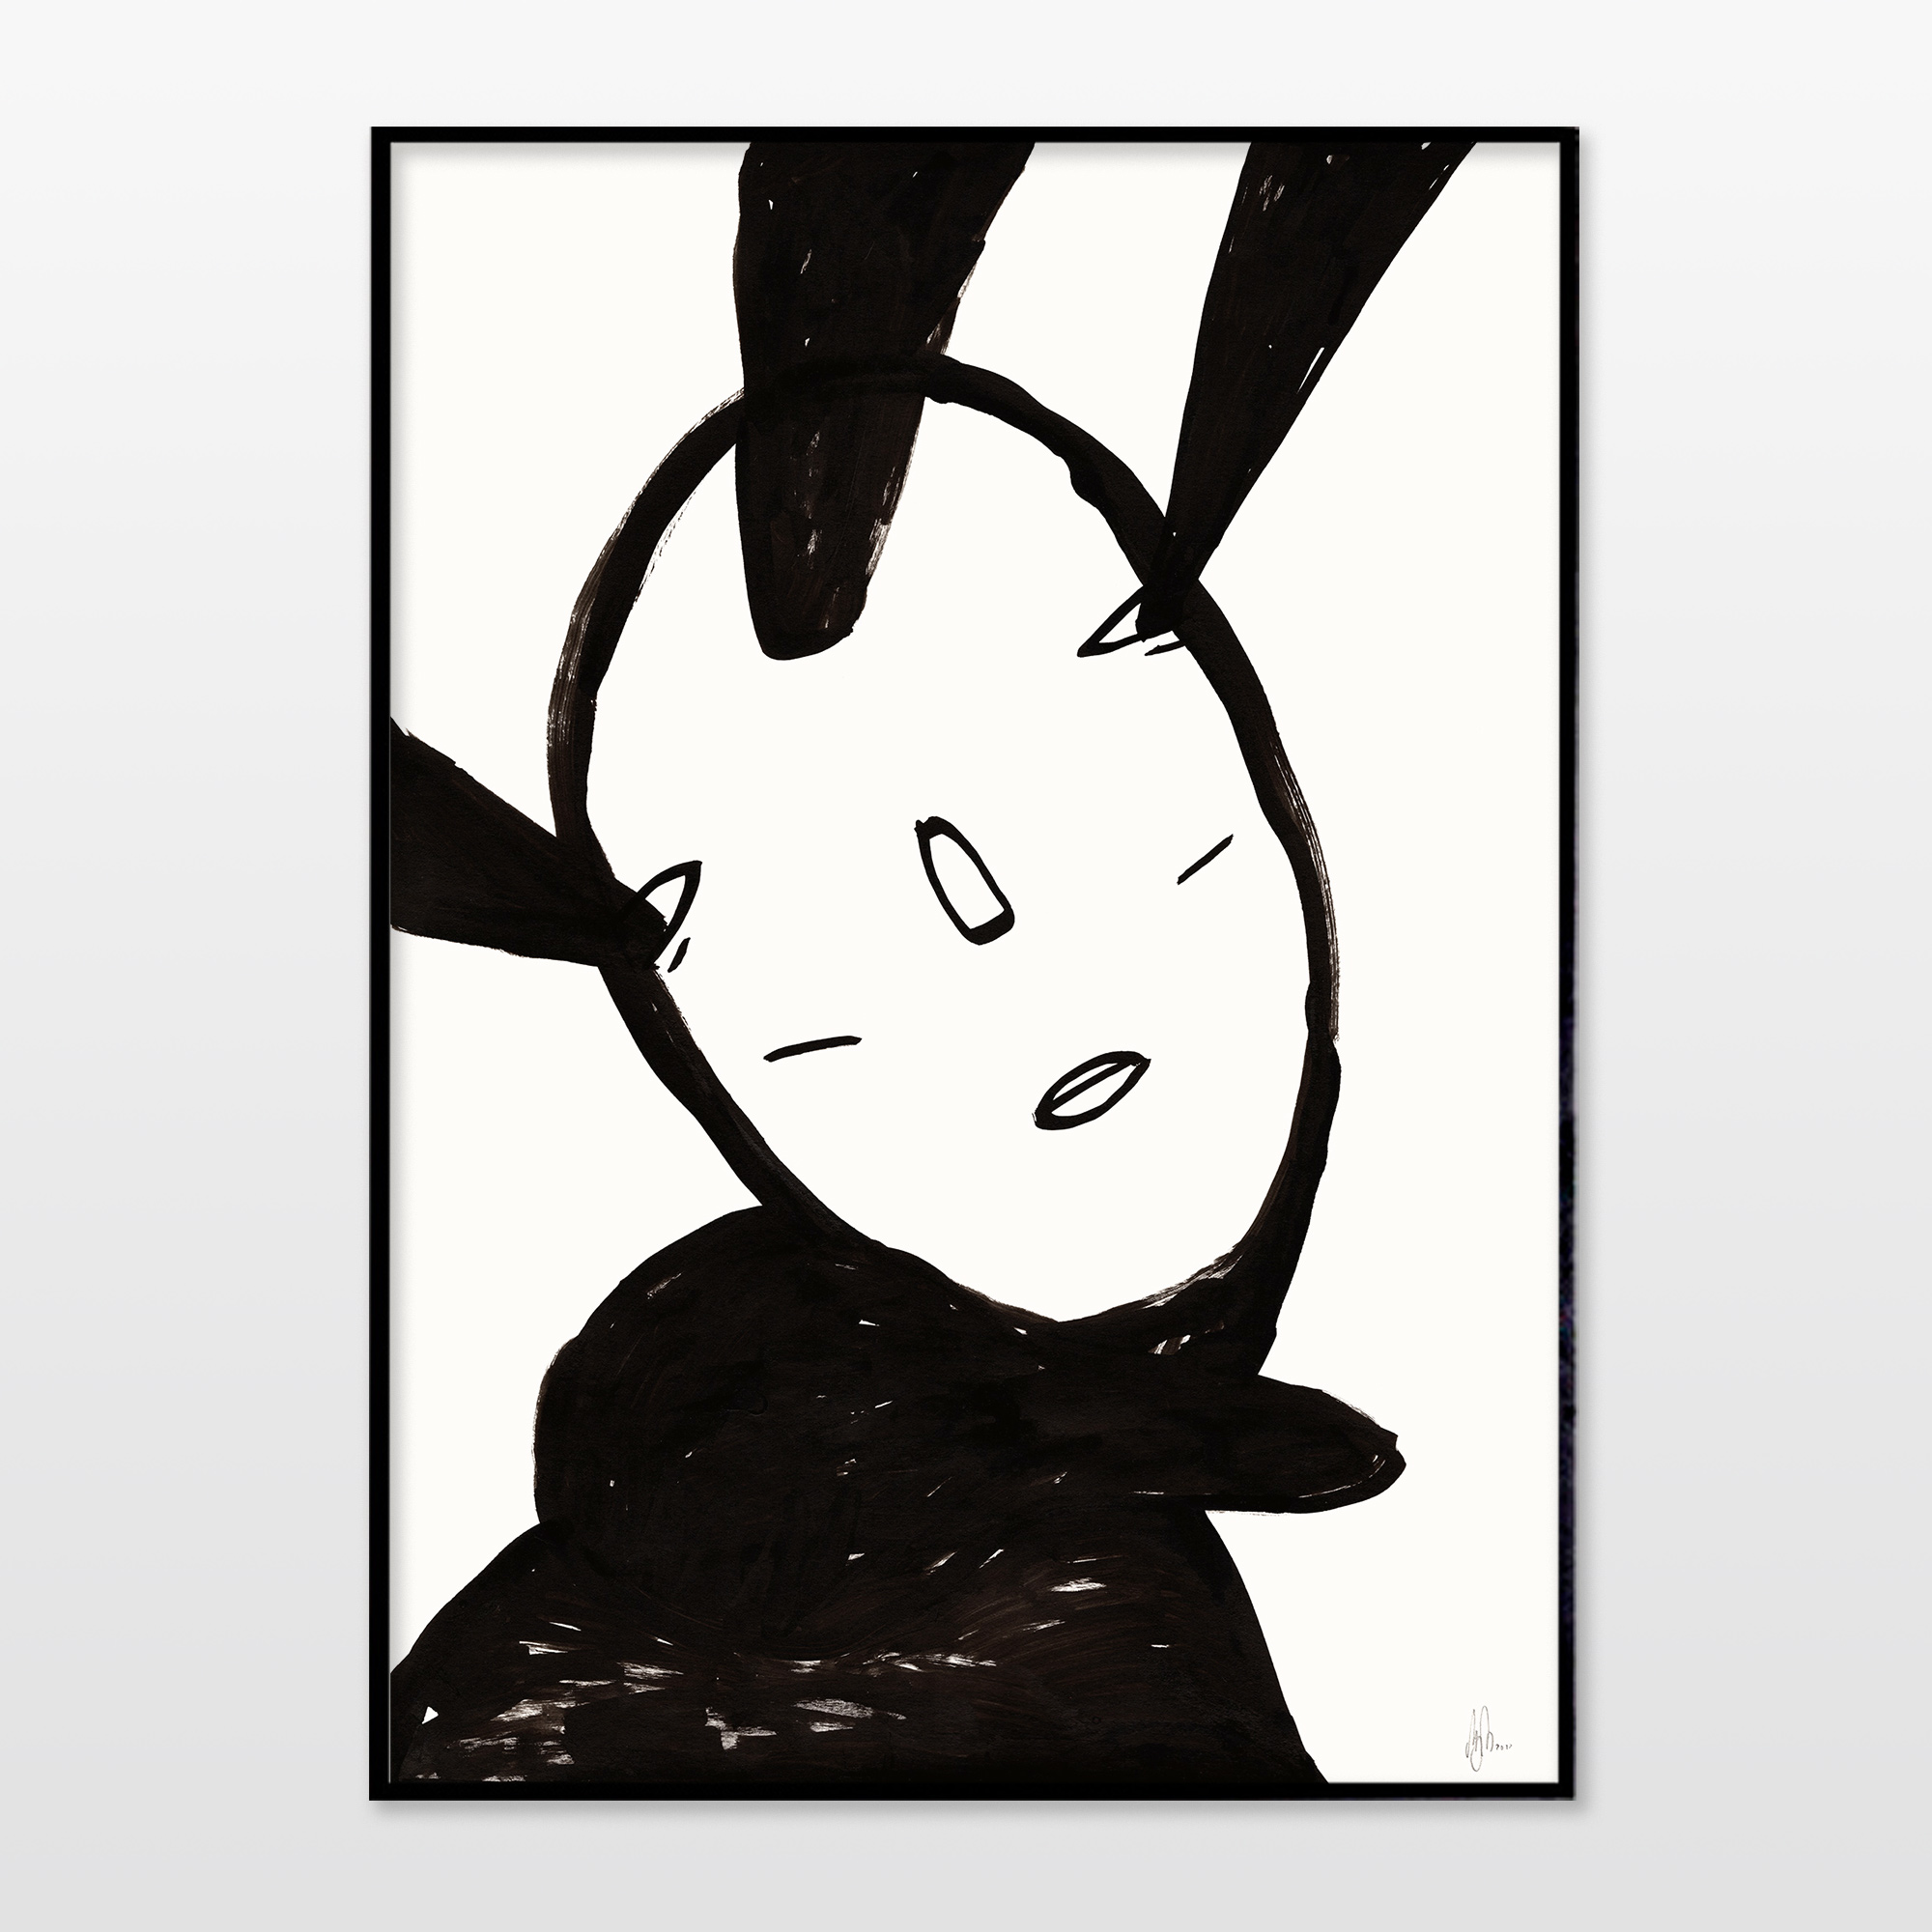 art-prints, giclee, figurative, illustrative, minimalistic, moods, people, black, white, ink, paper, black-and-white, copenhagen, danish, decorative, design, interior, interior-design, modern, modern-art, nordic, posters, prints, scandinavien, Buy original high quality art. Paintings, drawings, limited edition prints & posters by talented artists.